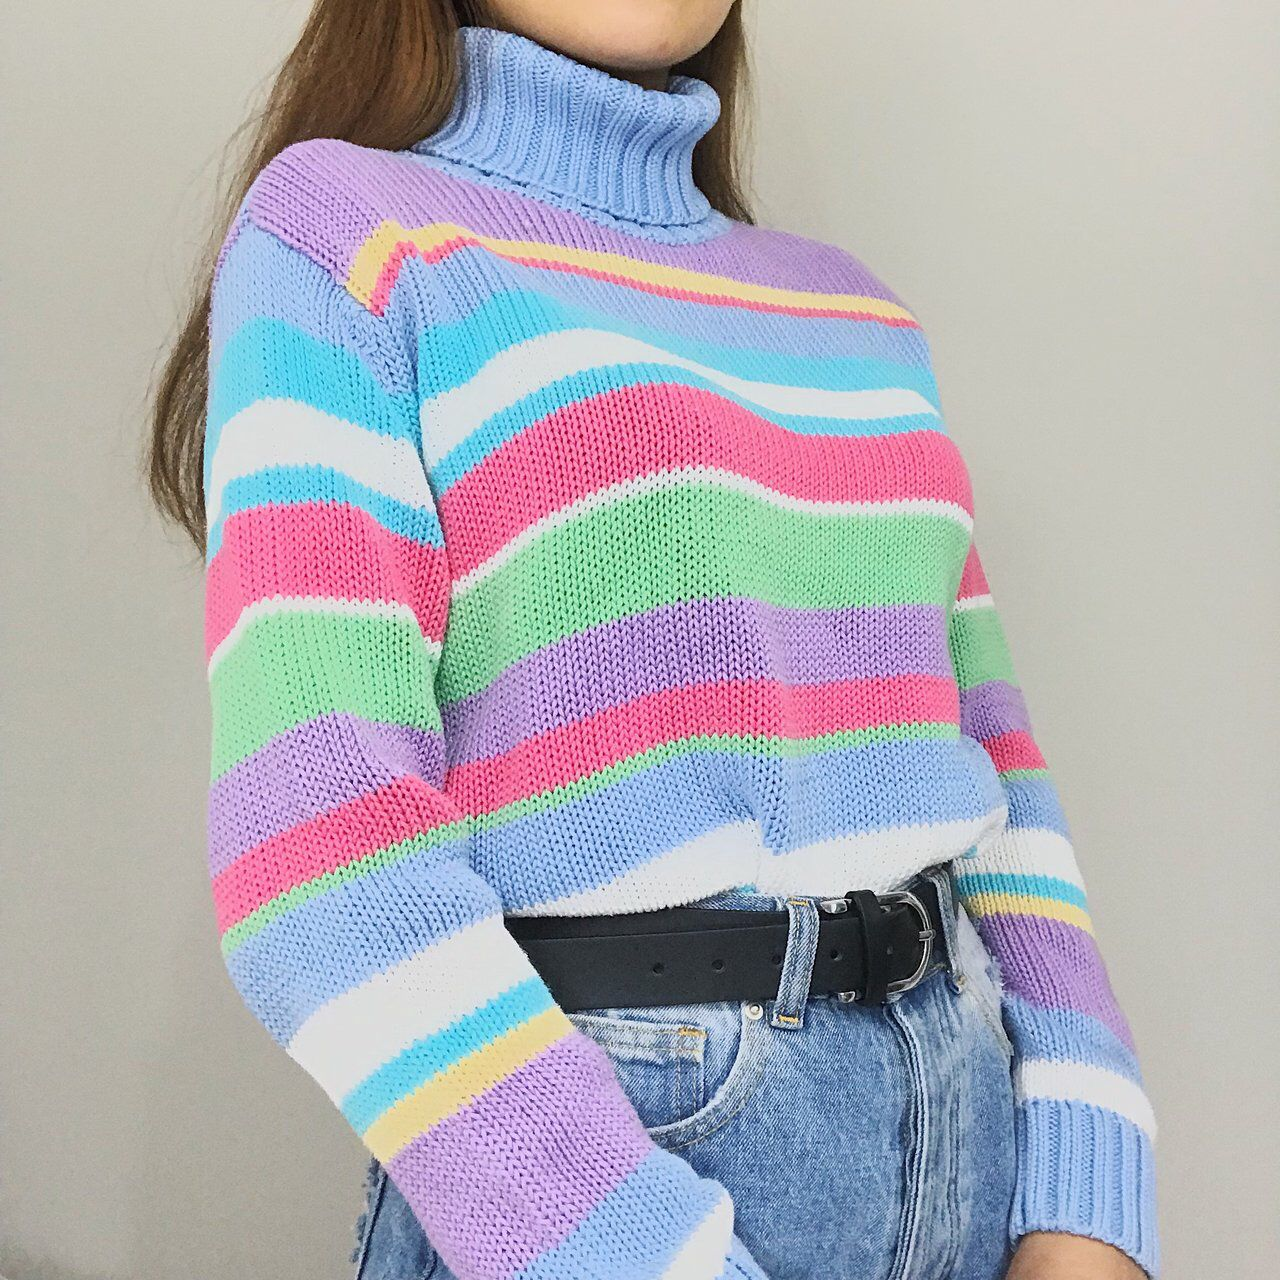 4f48cb5254a466 Listed on Depop by camposmoiraa in 2019   depop   Depop, Turtle neck ...